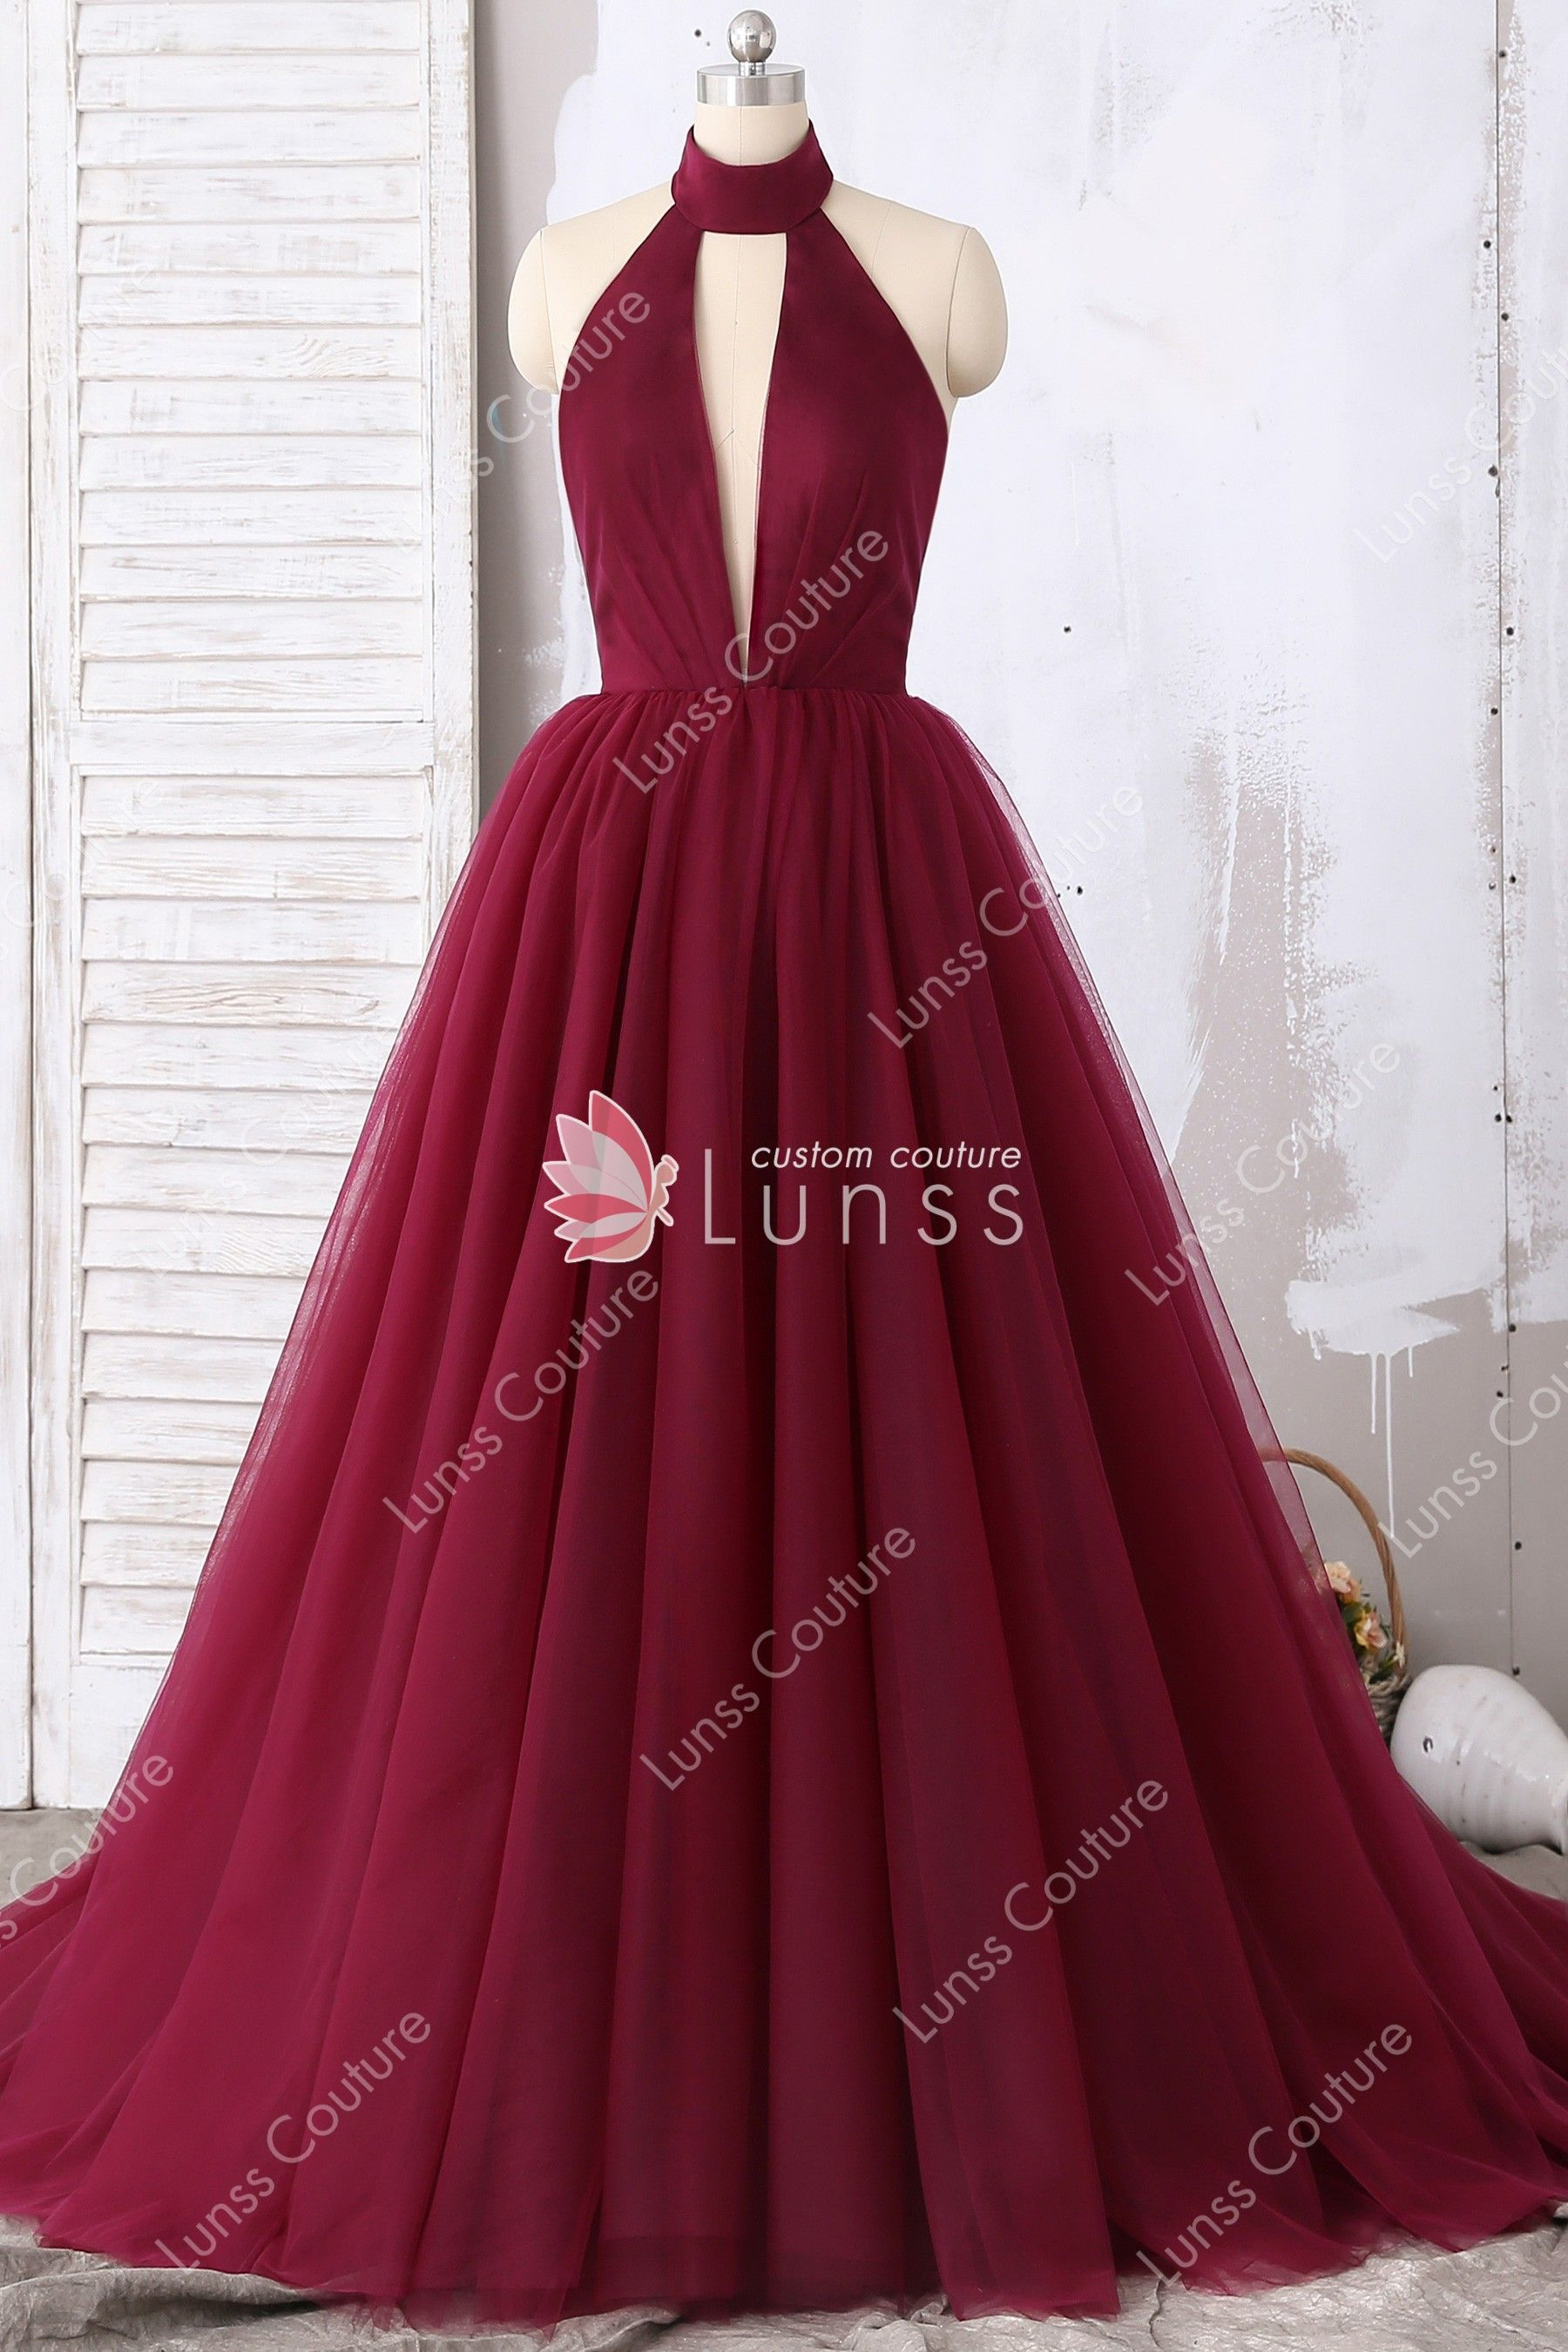 e8e08b1d84 This queen style dark wine tulle puffy prom dress features timeless ball  gown silhouette